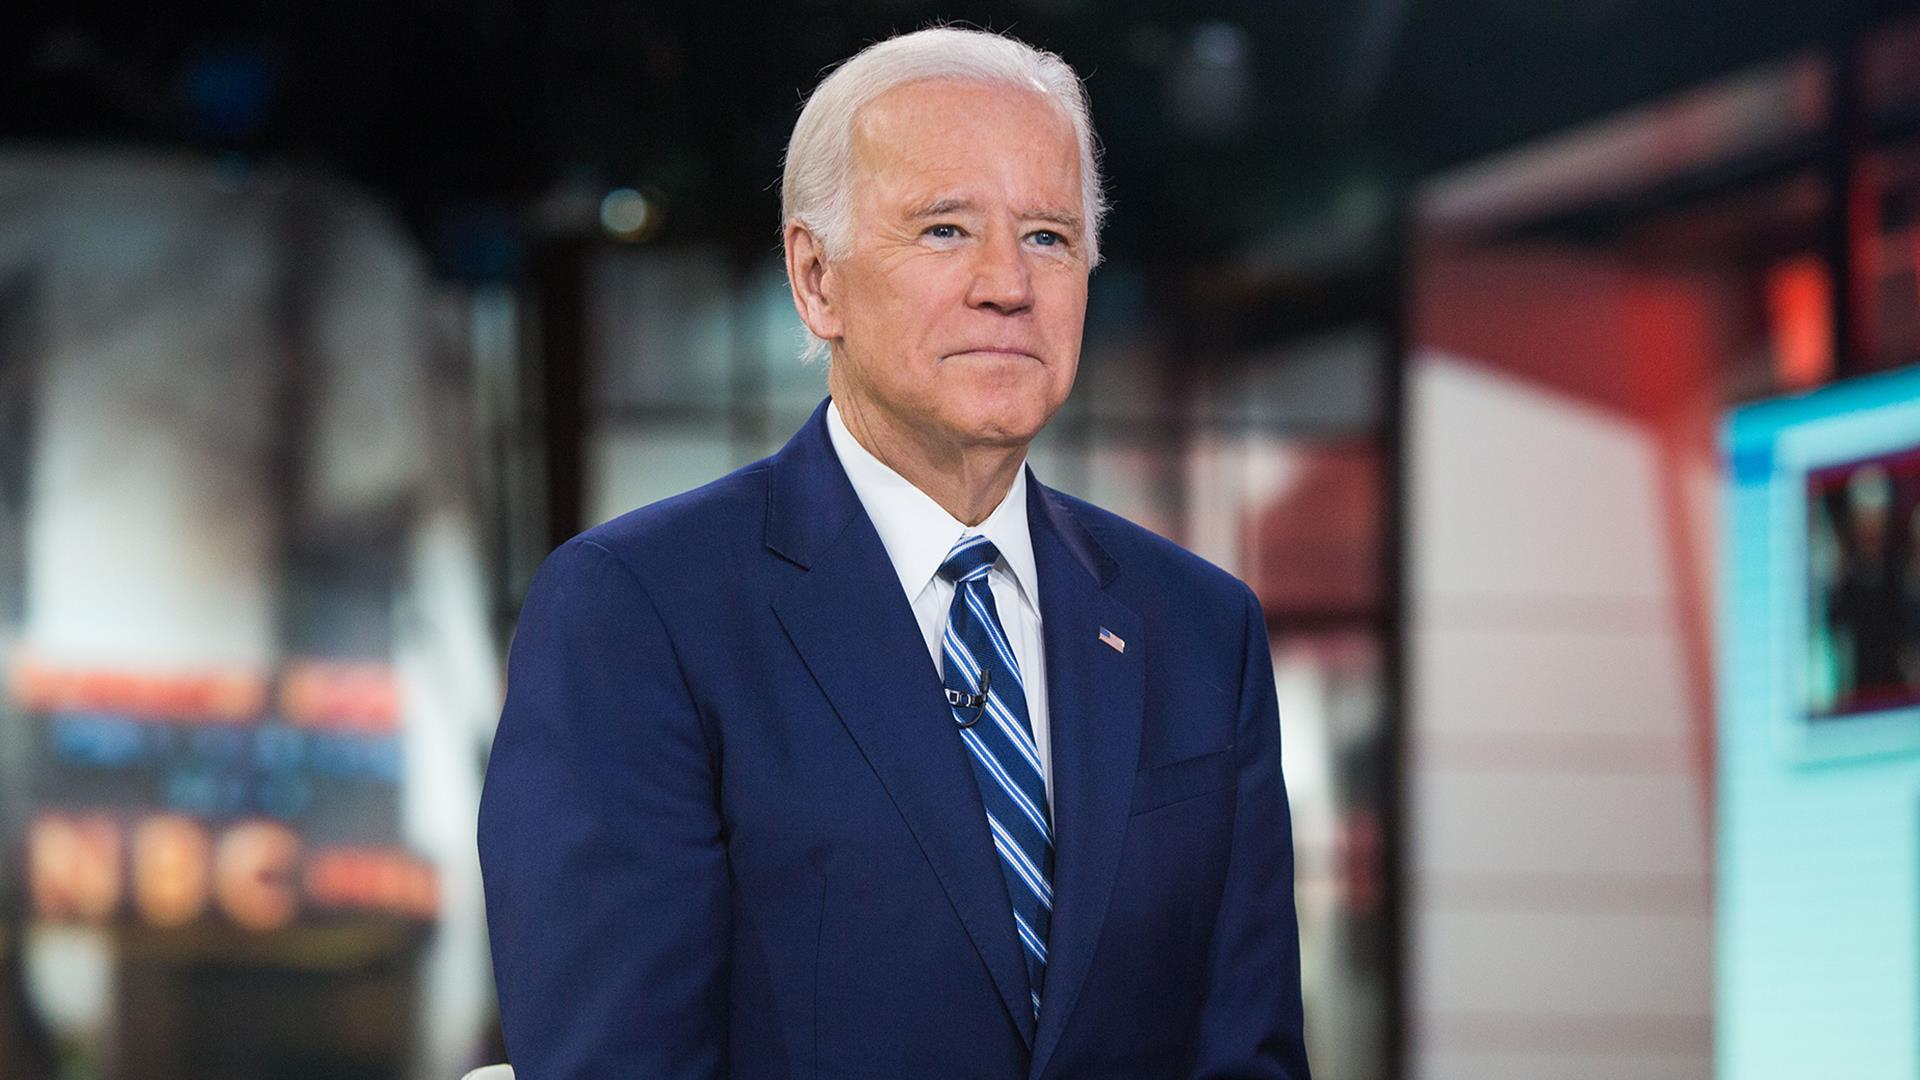 joe biden i haven t made up my mind on 2020 presidential bid